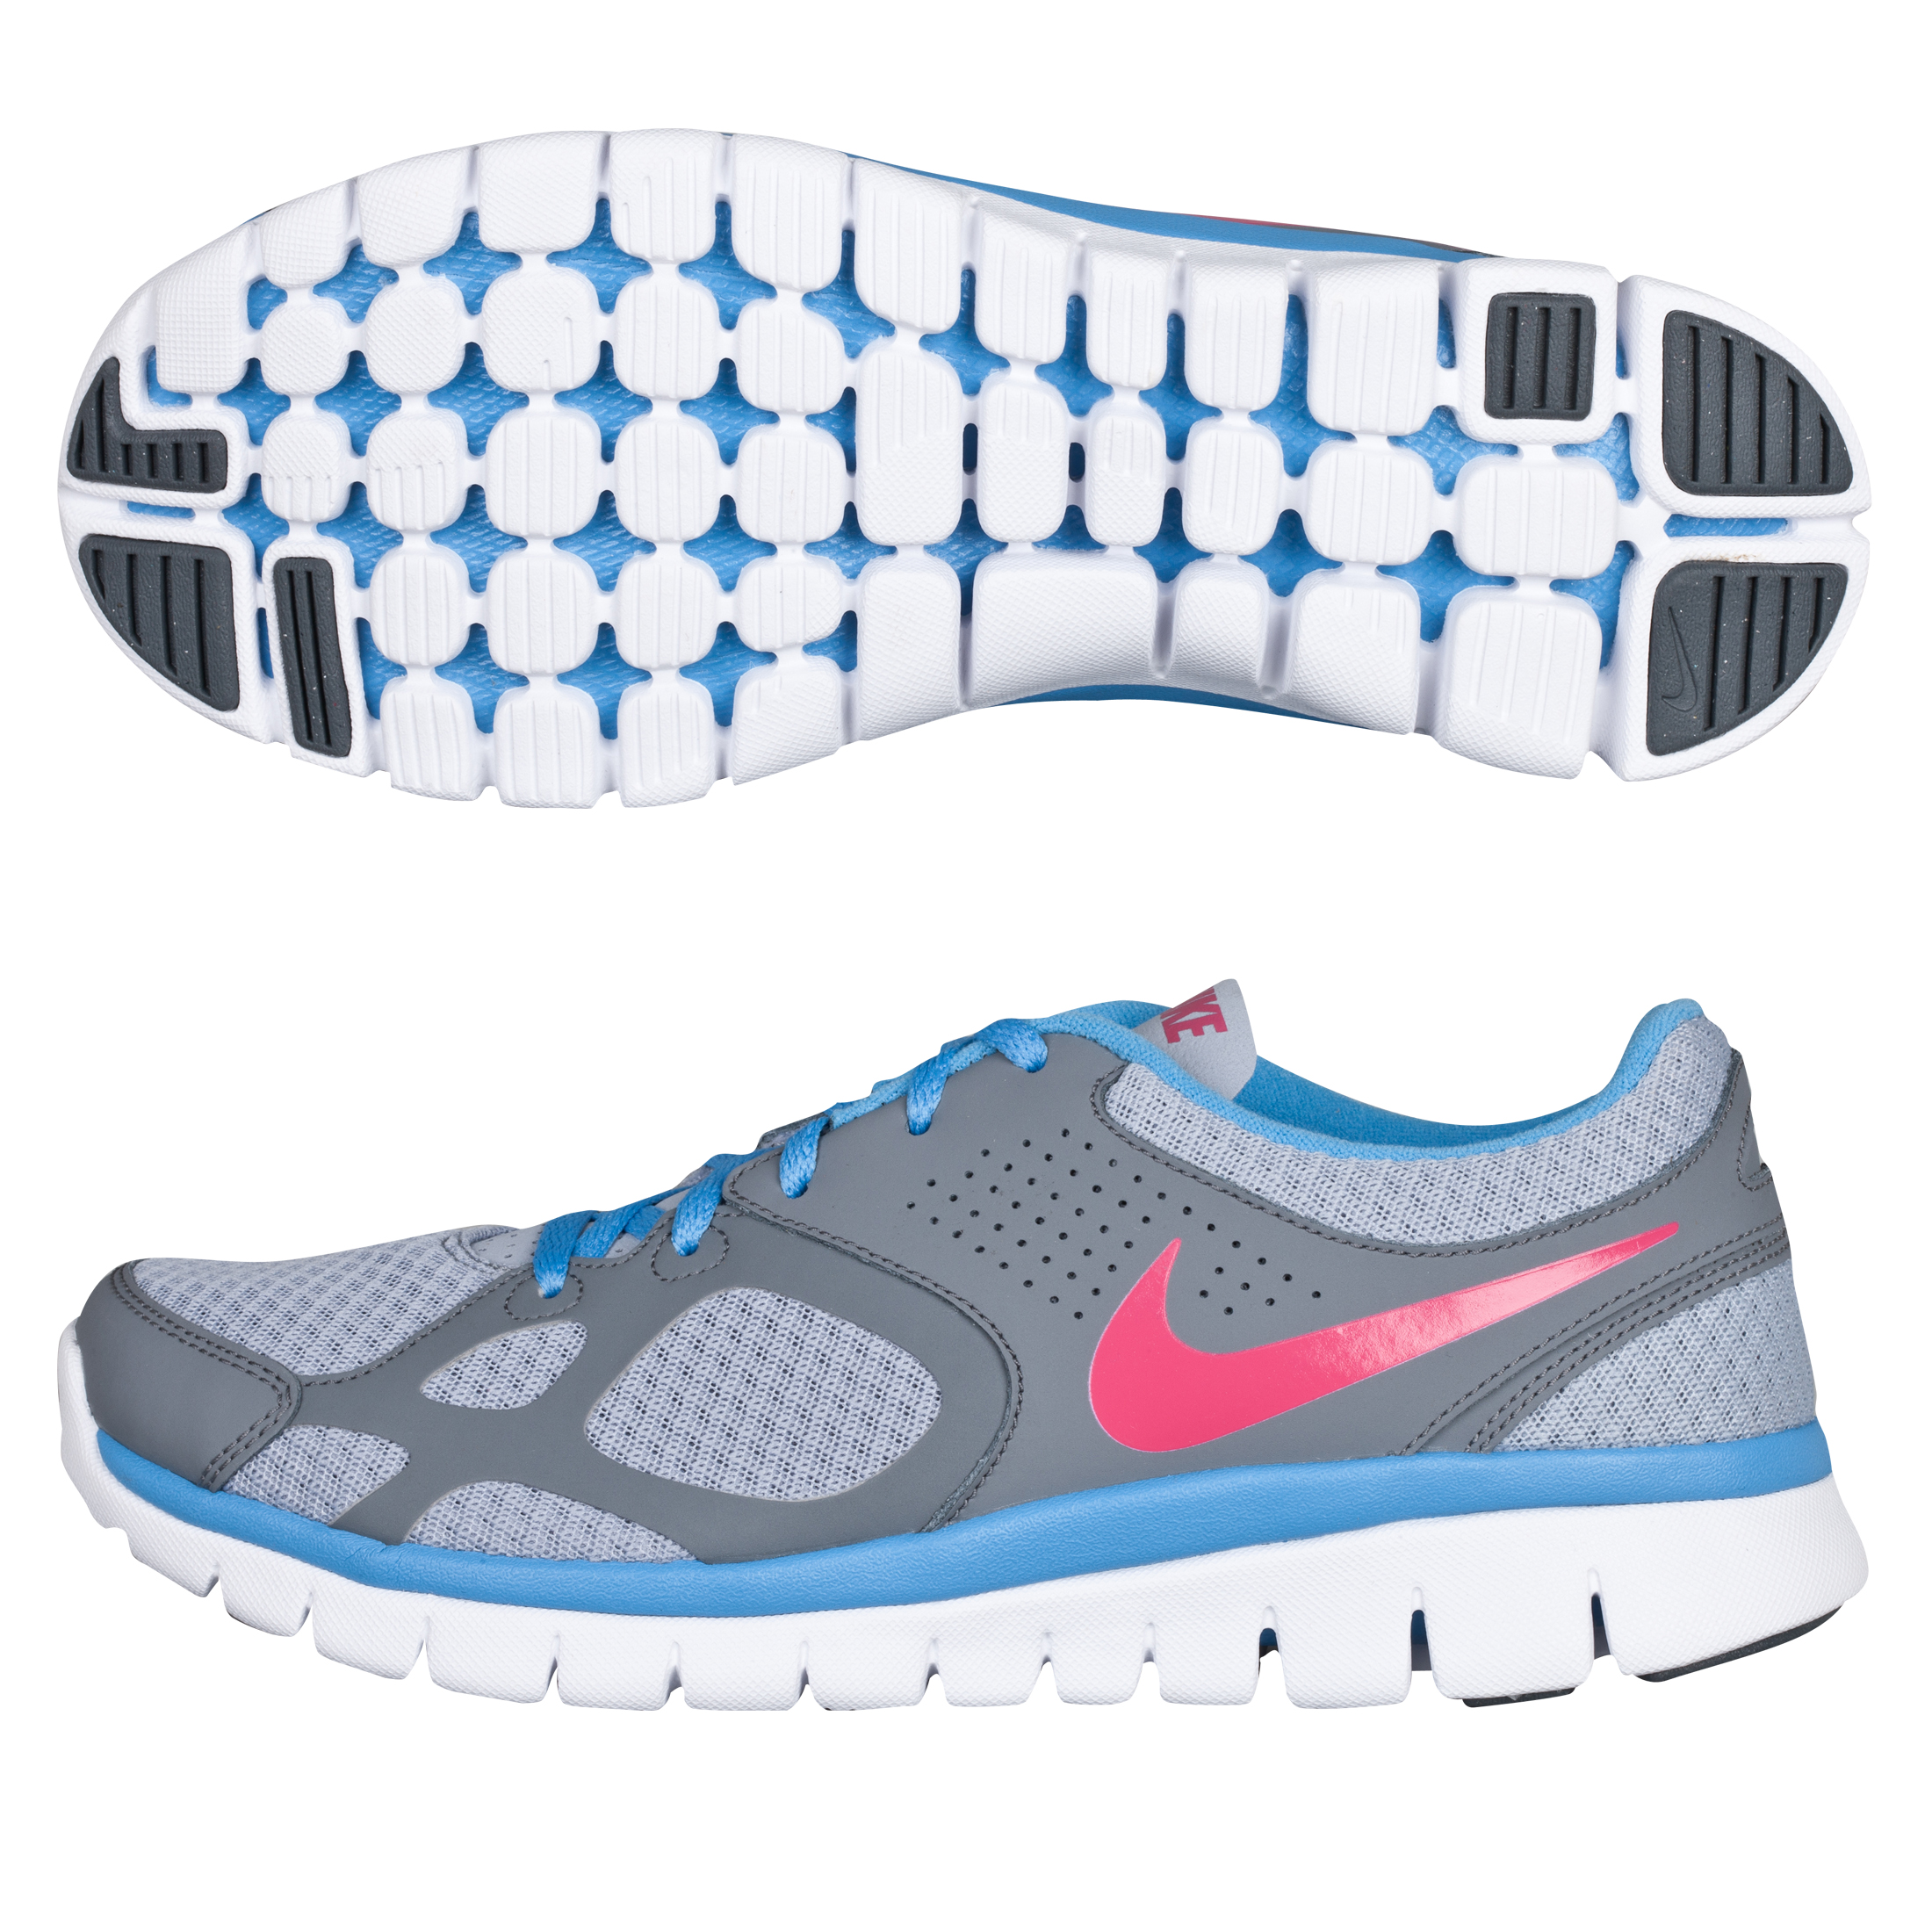 Nike Flex 2012 Running Trainers - Wolf Grey/University blue - Womens